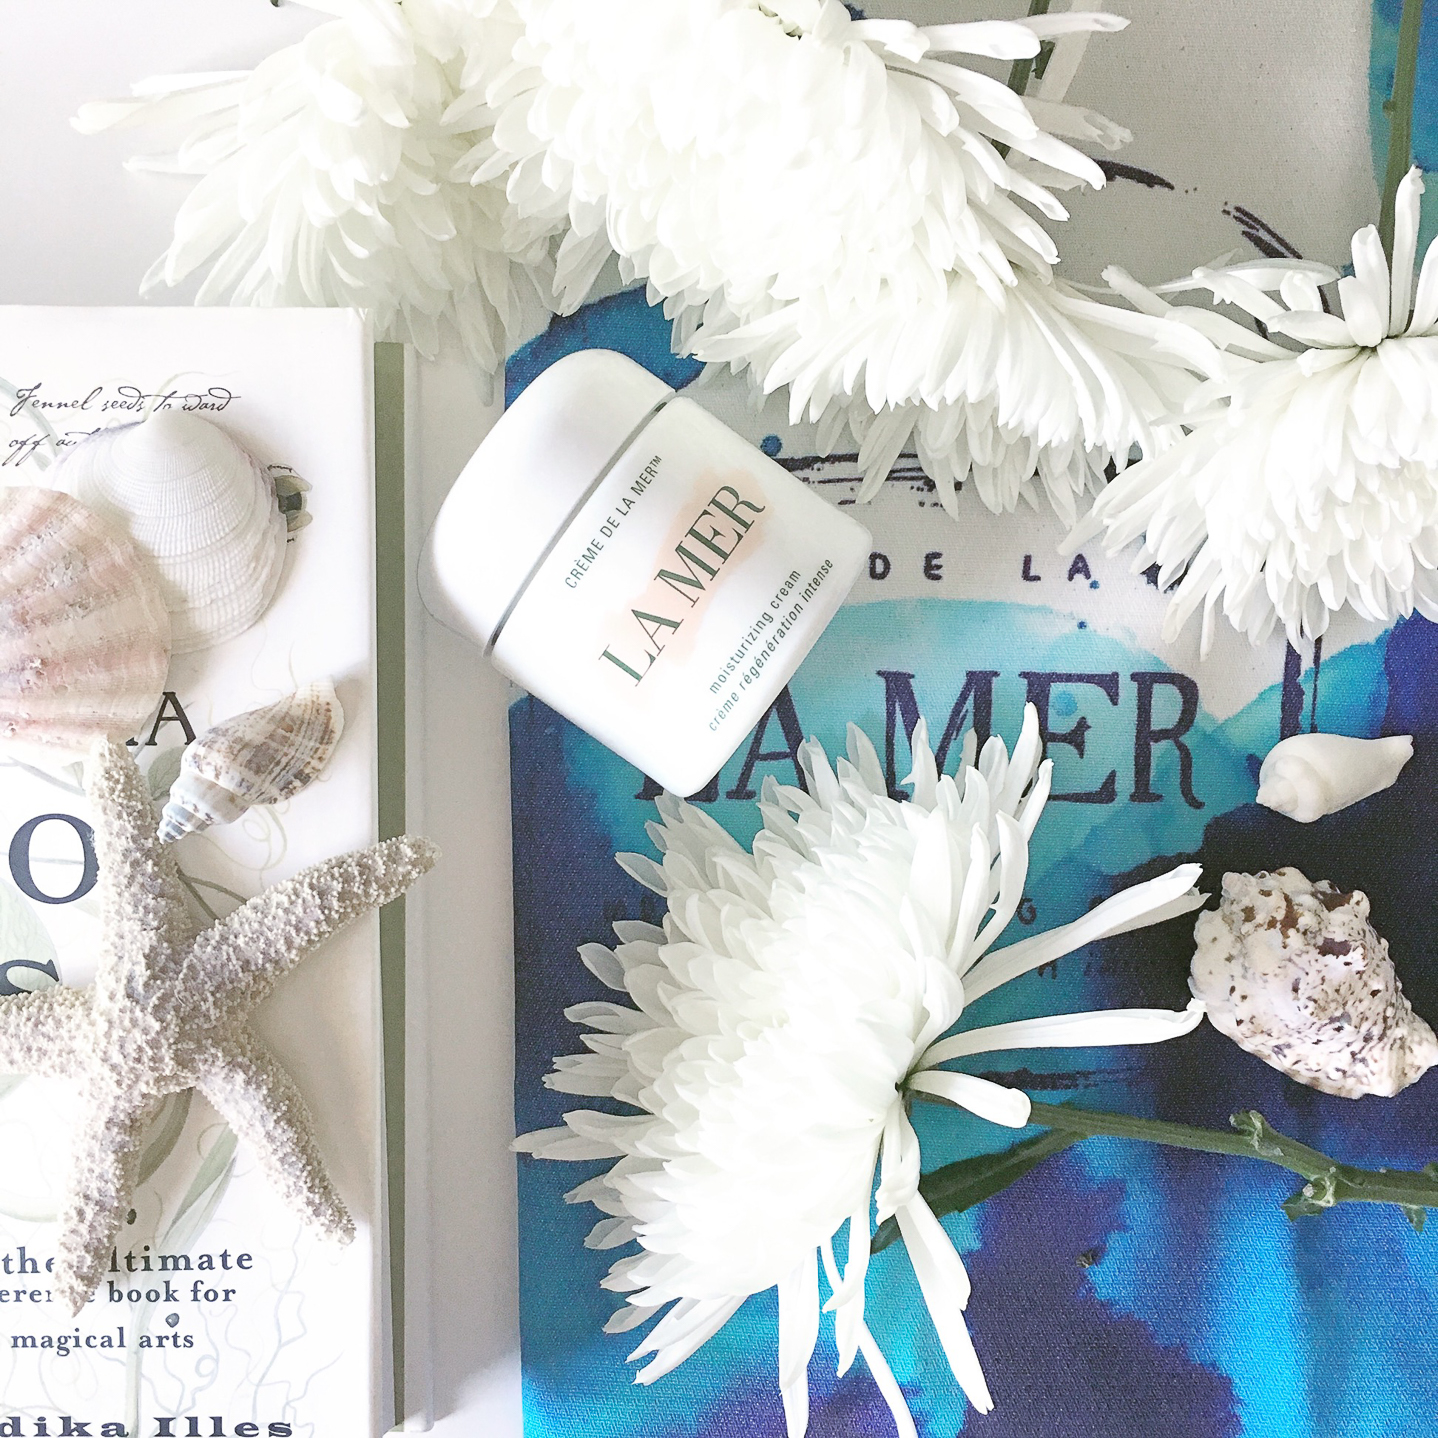 my favorite outfits for summer, Instagram, life lately, la mer moisturizing creme, world oceans day